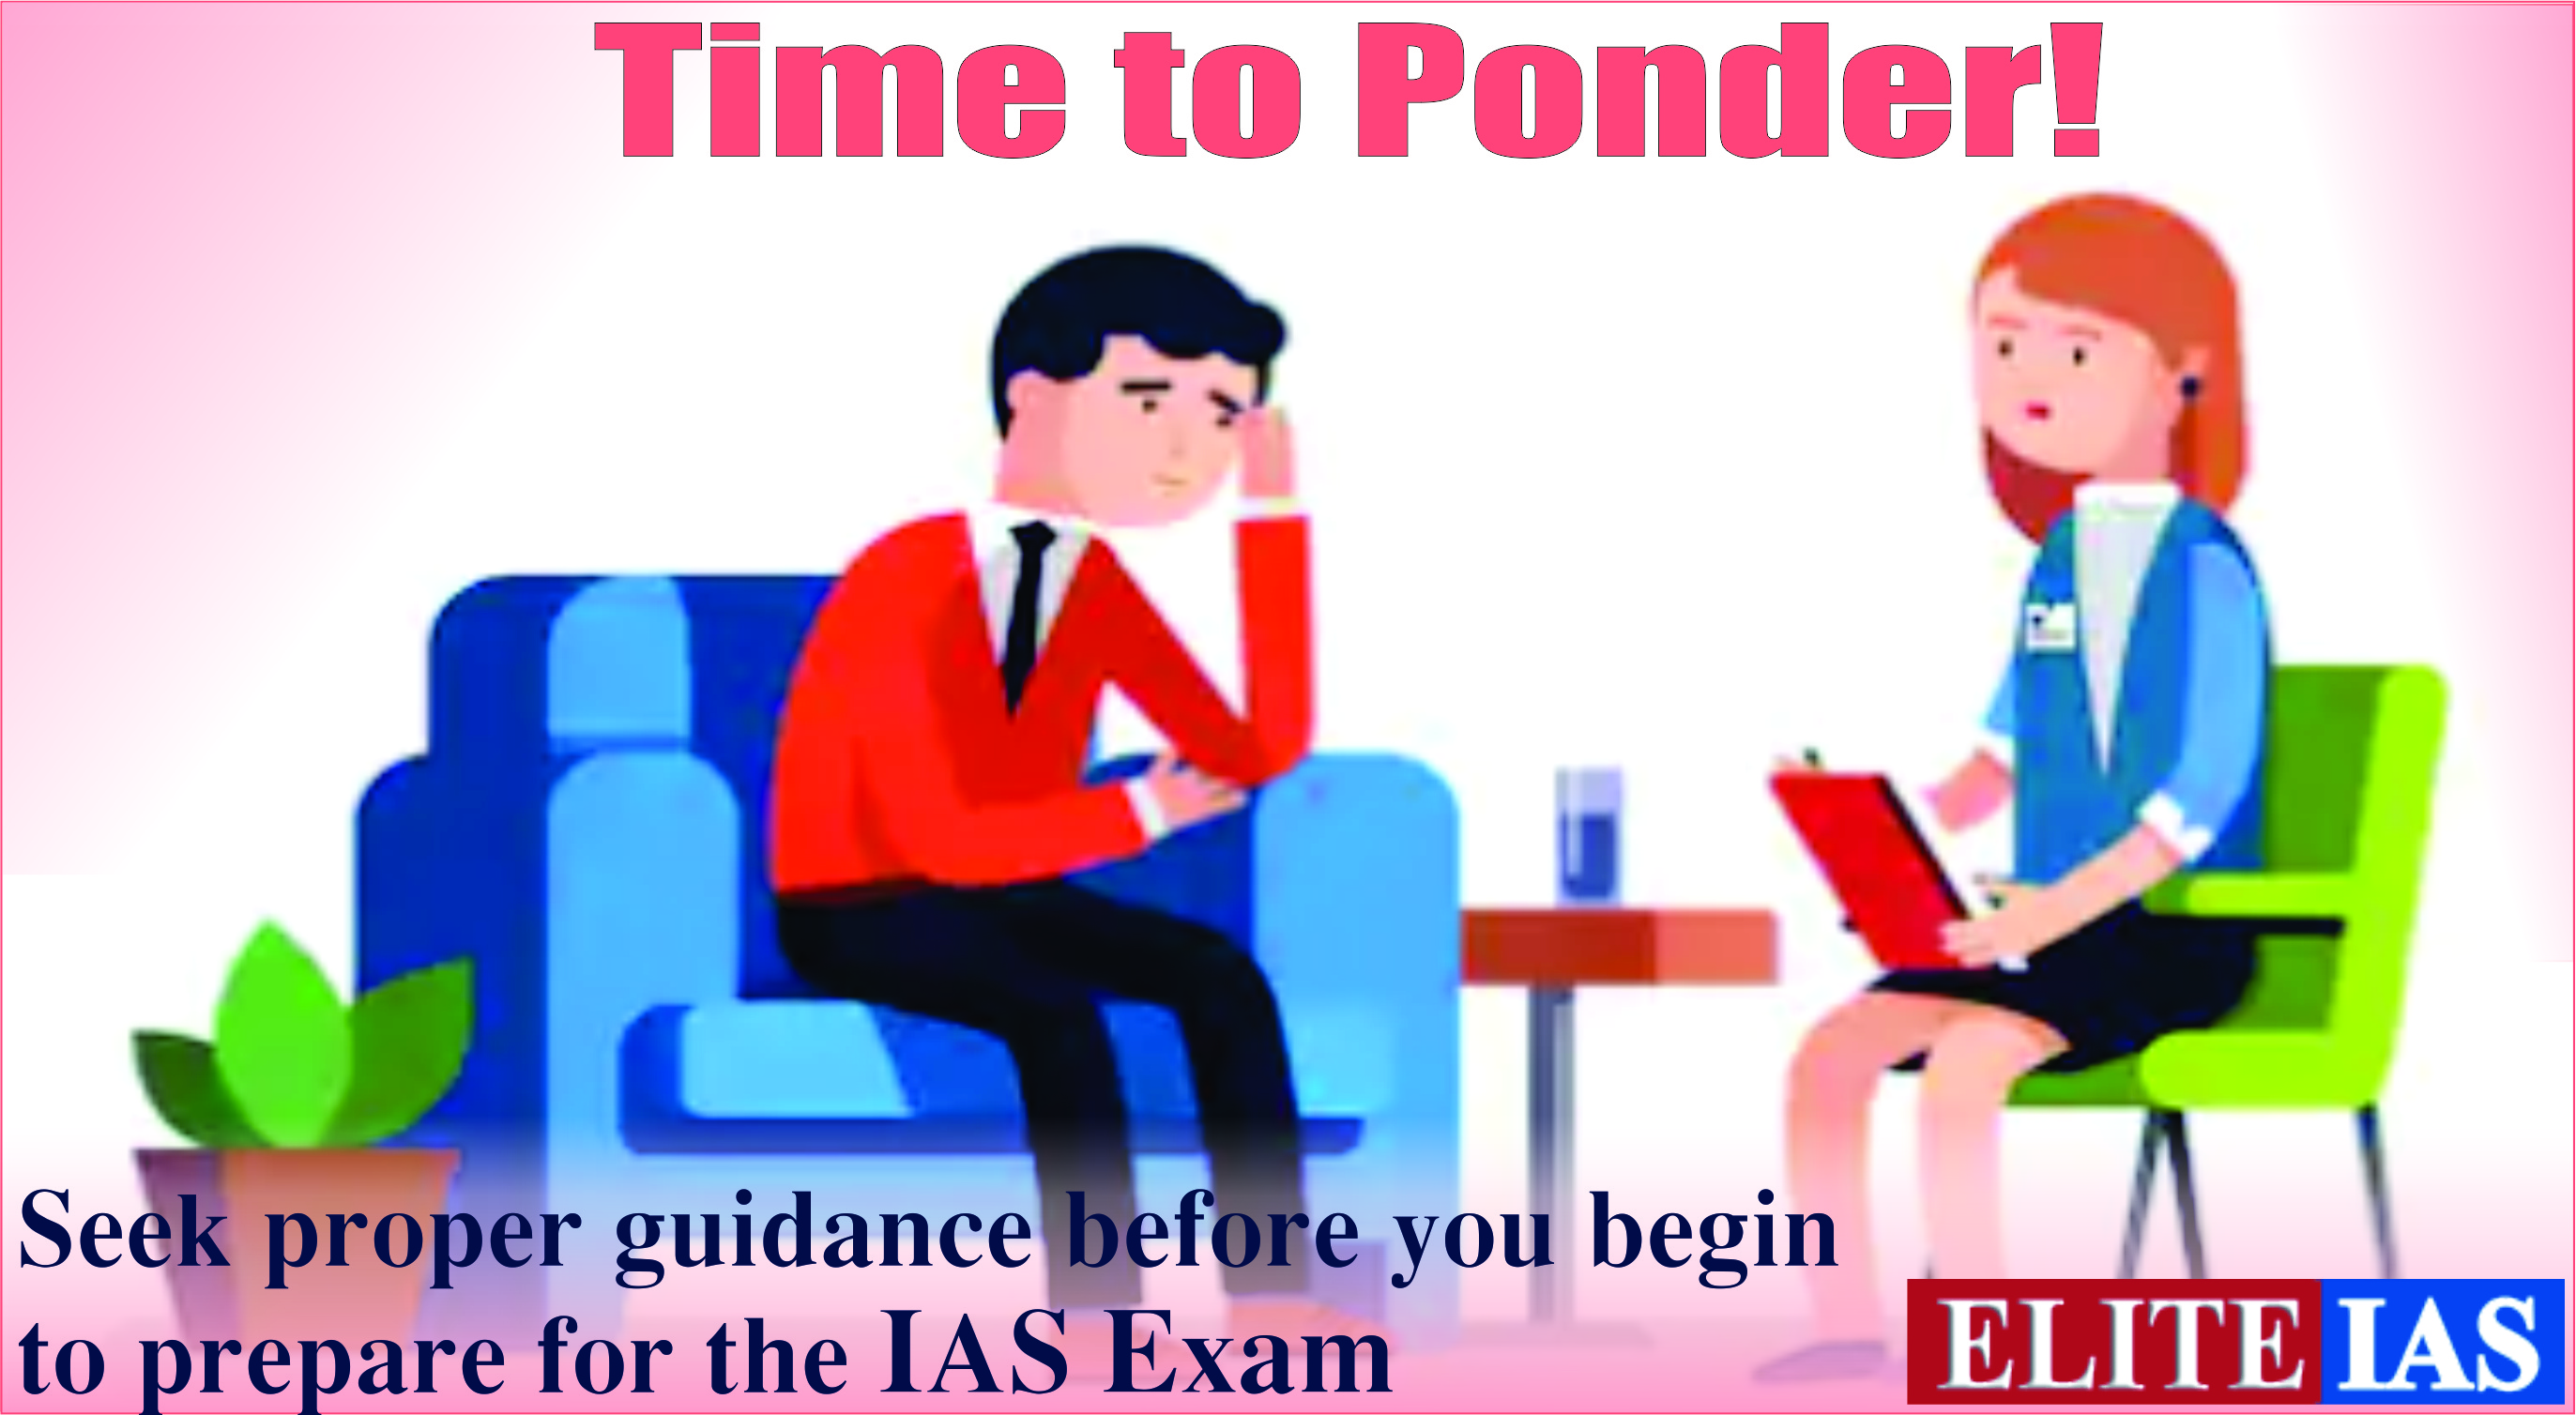 5 Things to Think of Before Preparing for the IAS Exam